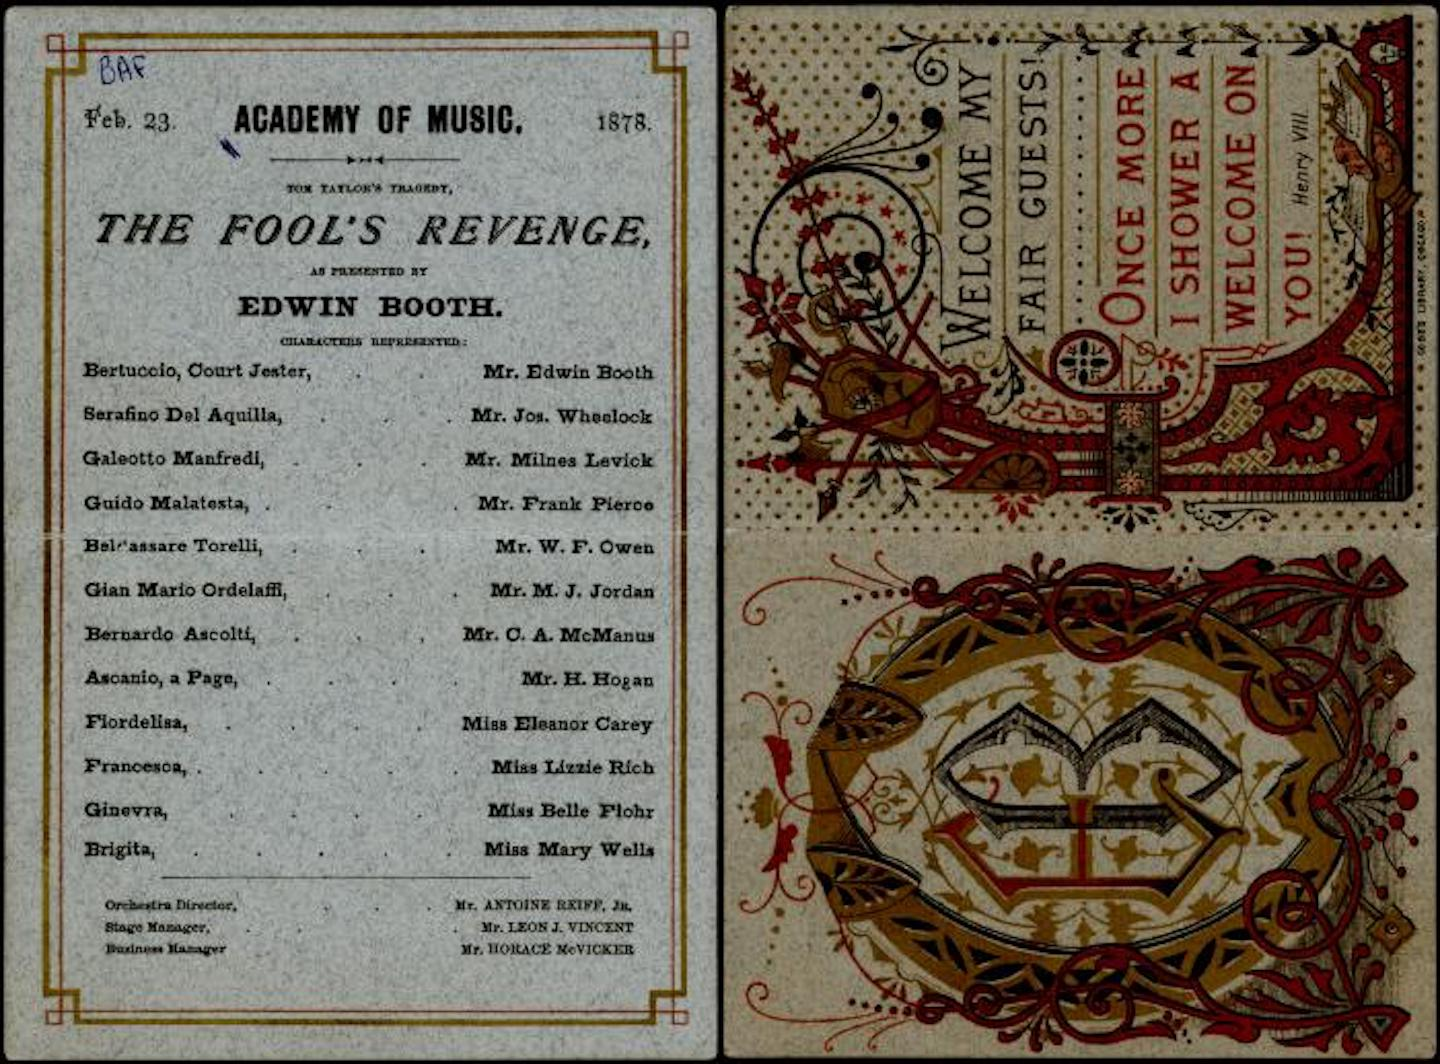 Playbill for Edwin Booth's 'The Fool's Revenge, 1878